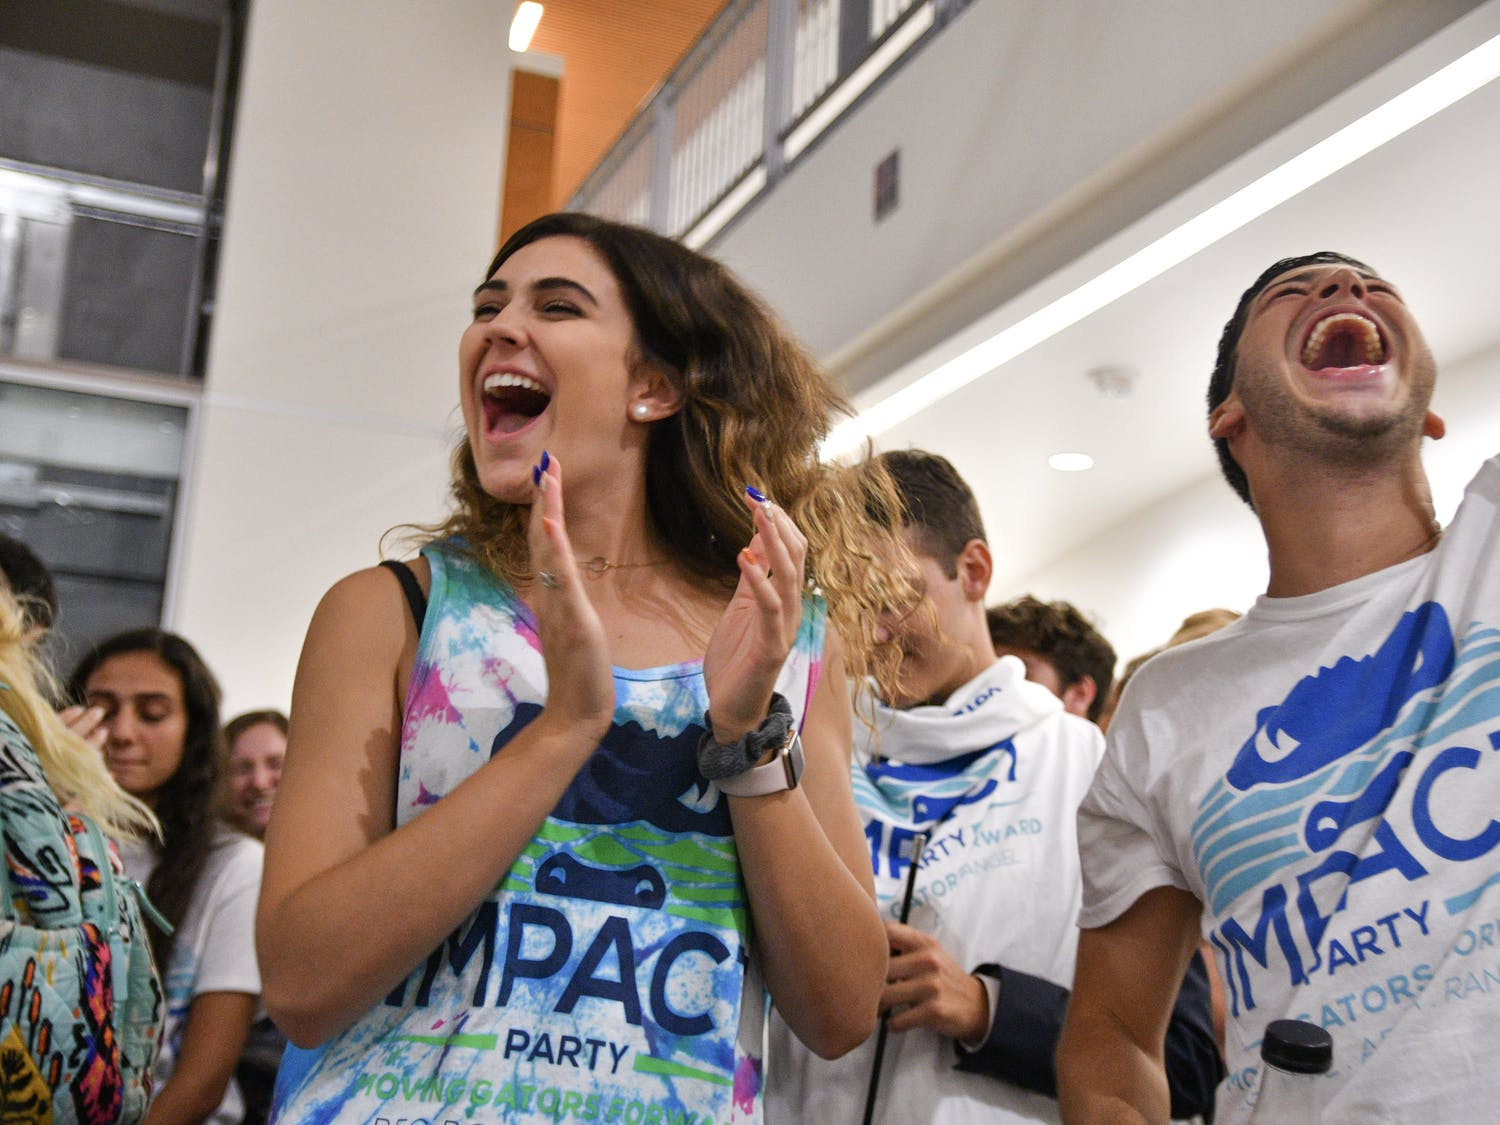 Lexie Atlas, a 19-year-old UF sophomore engineering student, celebrates with her friend Kyle Levy, who just won a District B Senator seat for the Impact Party. The results were read in the Reitz Union Wednesday night where Impact won 35 of 50 seats.